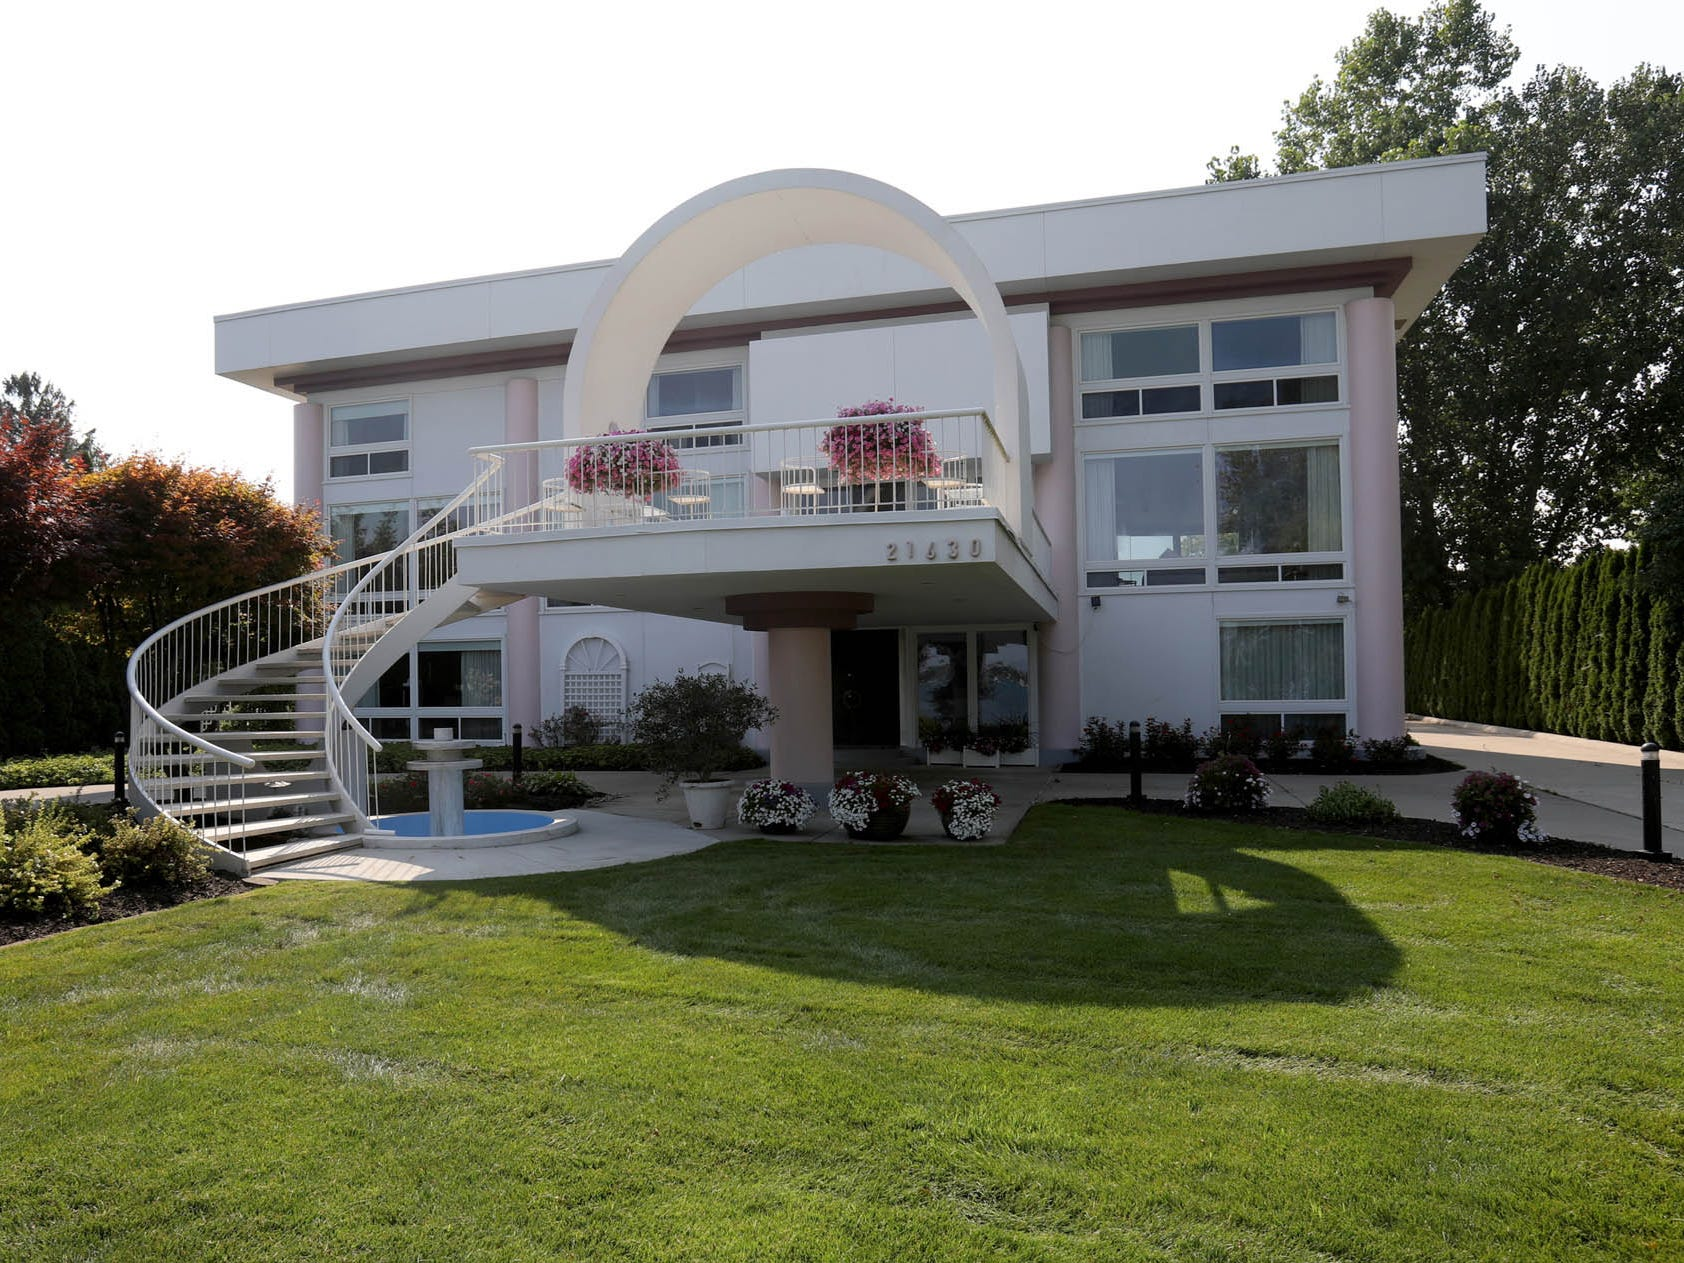 Theater-like views and a pink kitchen make this Grosse Ile home a showplace